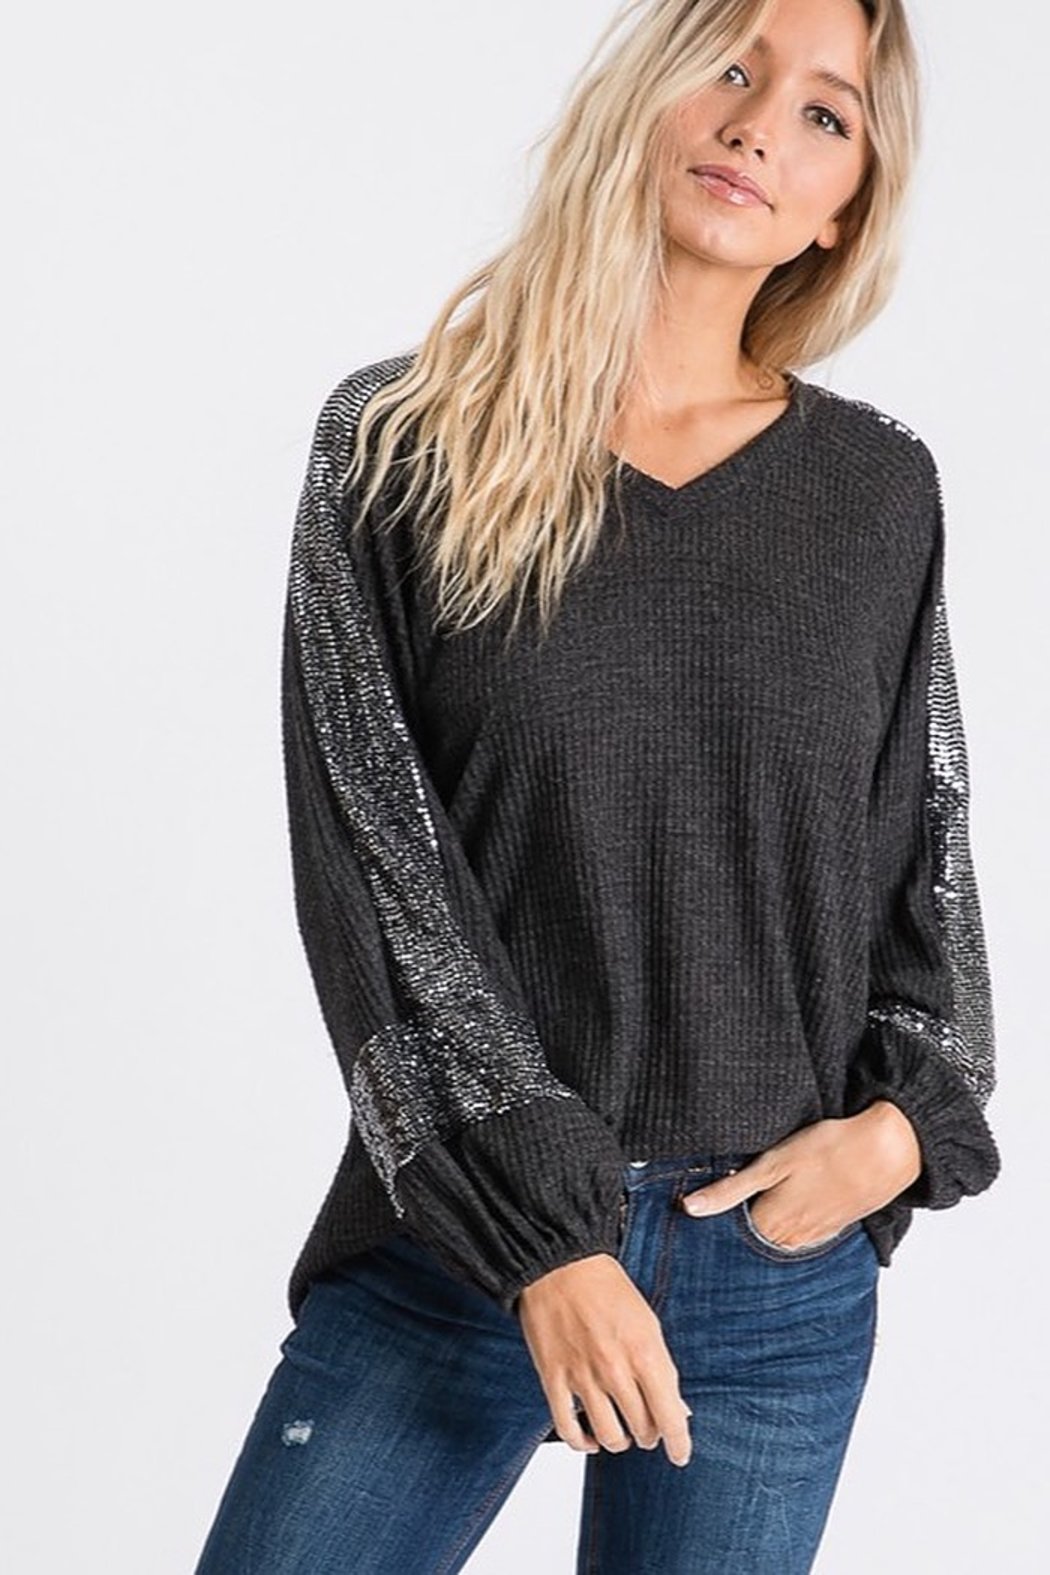 Hailey & Co Sequin Panel Bubble Sleeve Thermal VNeck Top - Main Image